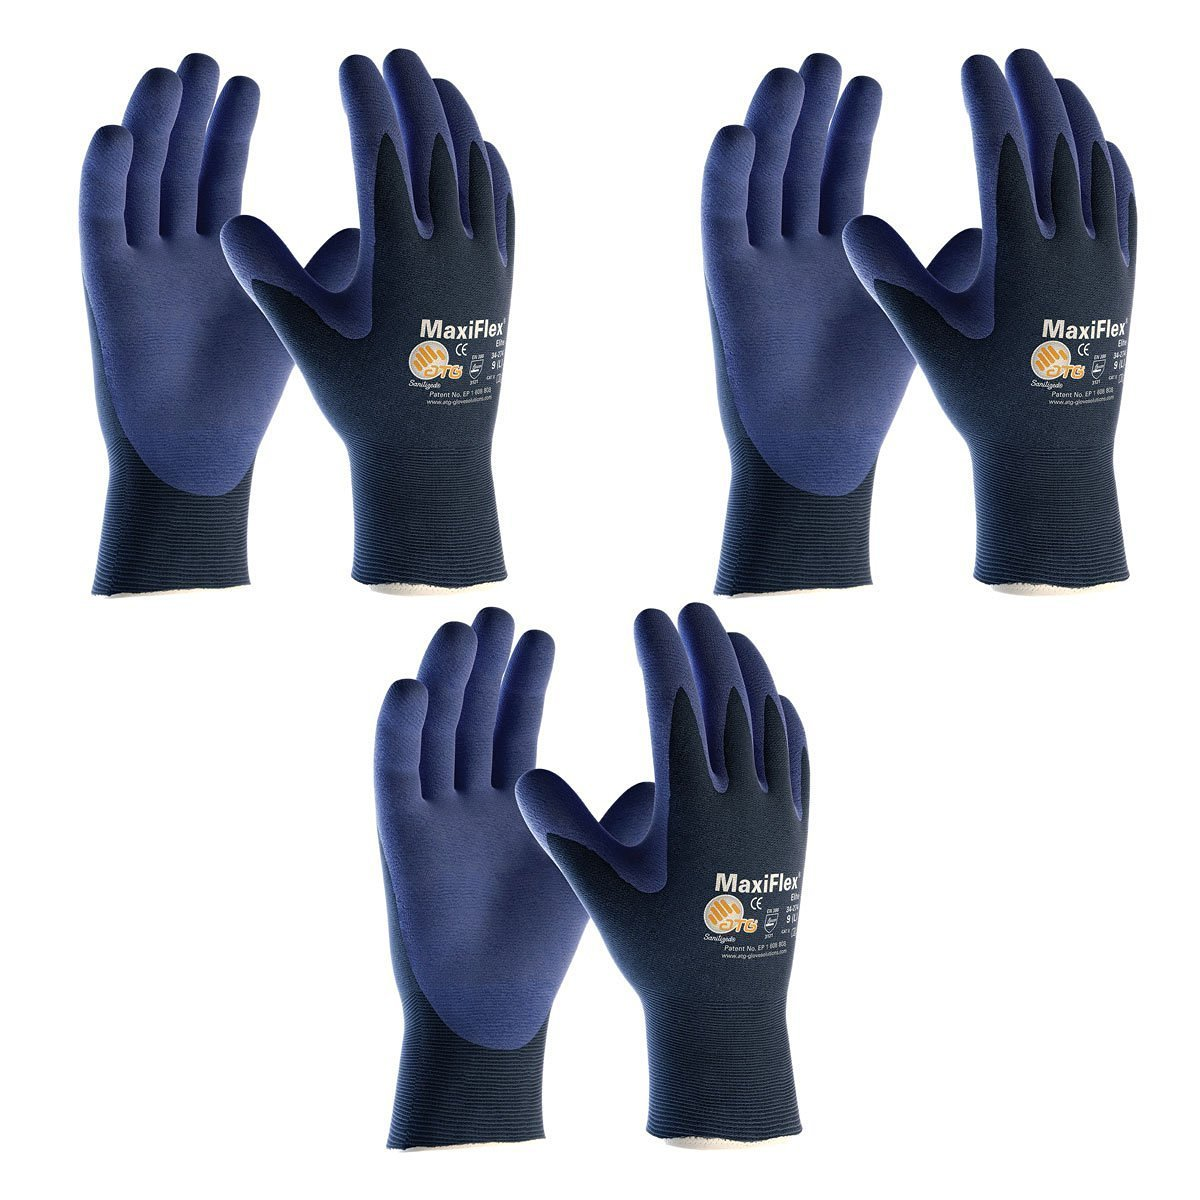 Elite MaxiFlex 34-274 Ultra Light Weight Glove with Nitrile Coated Grip on Palm and Fingers, (Sizes S-XL), Small, 3 Piece by Elite (Image #1)